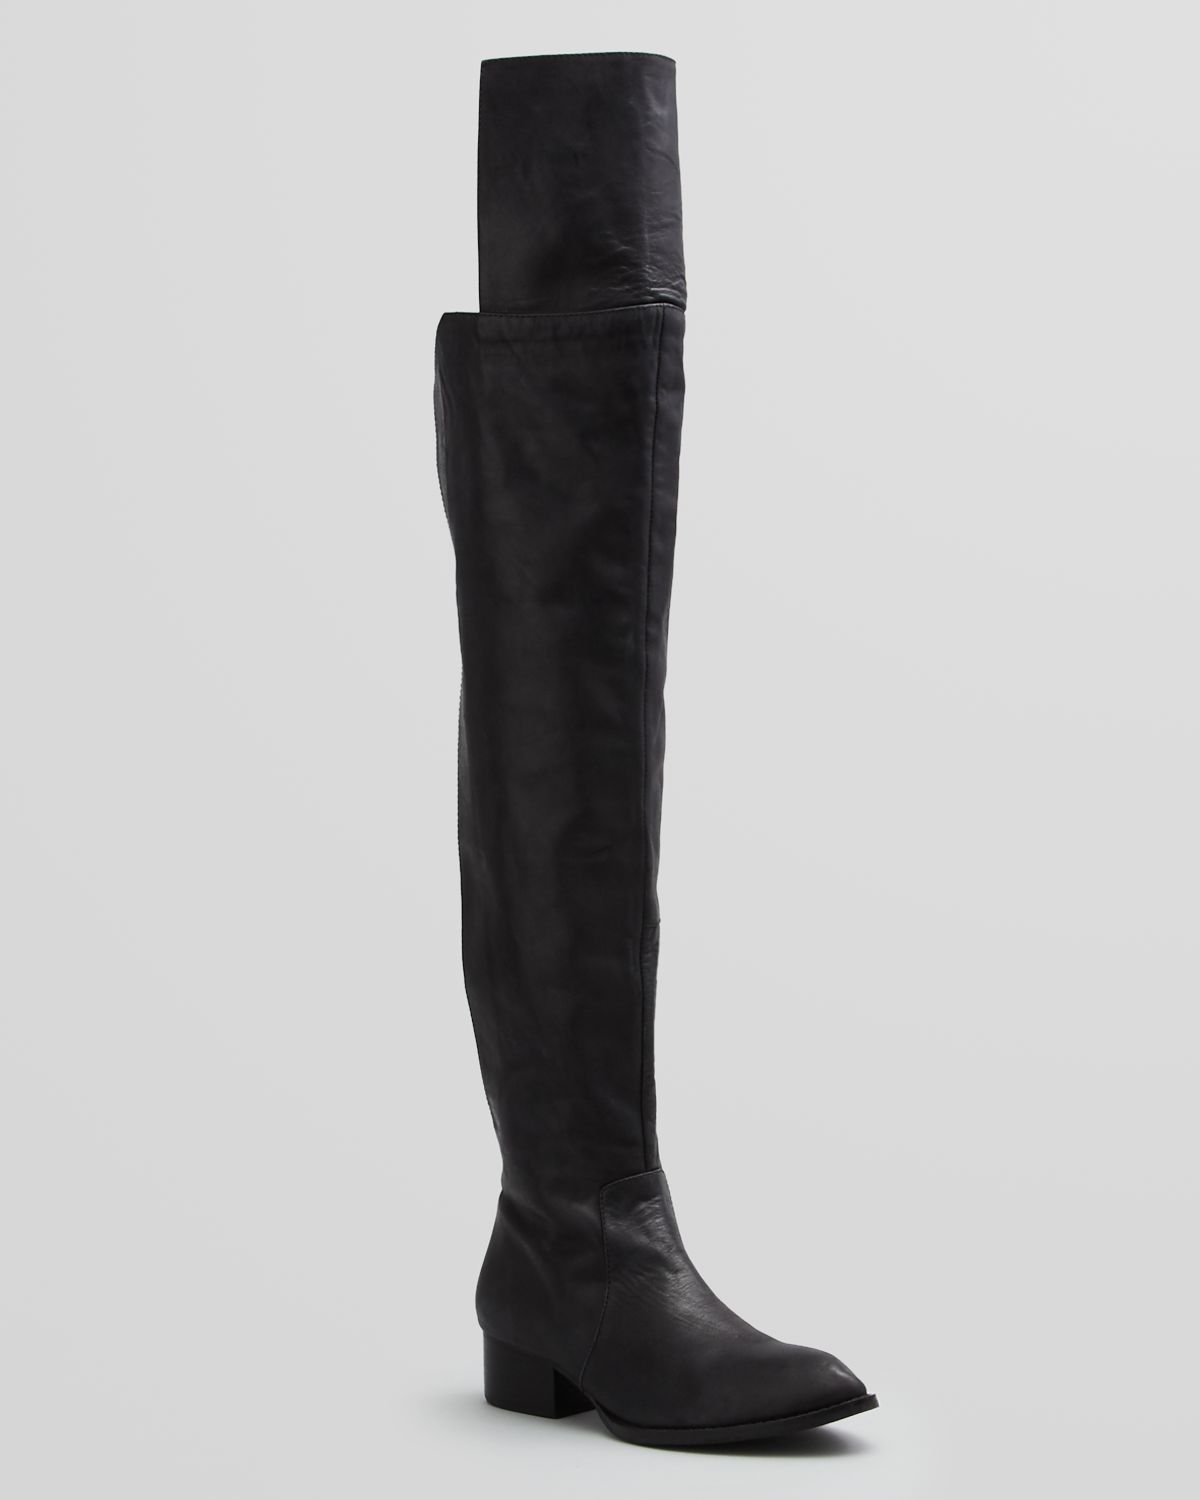 Jeffrey Campbell Over The Knee Boots - Backside   Bloomingdale's